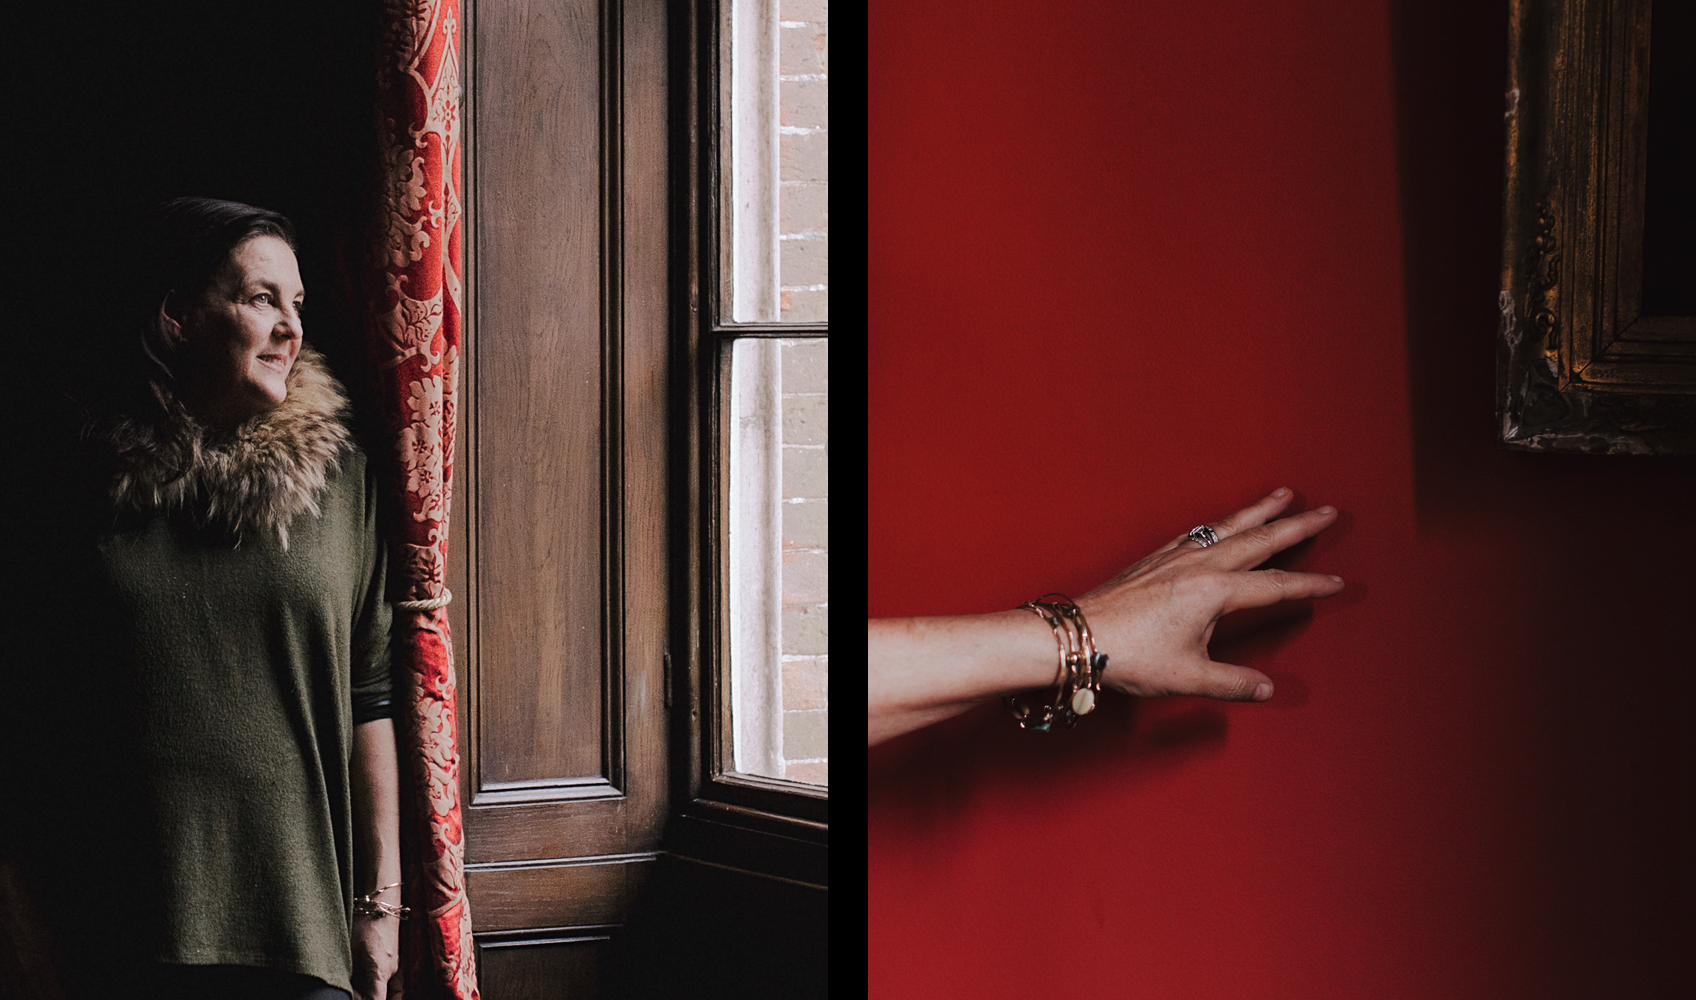 Joa Studholme, colour consultant for Farrow & Ball / Hand in front of a red wall